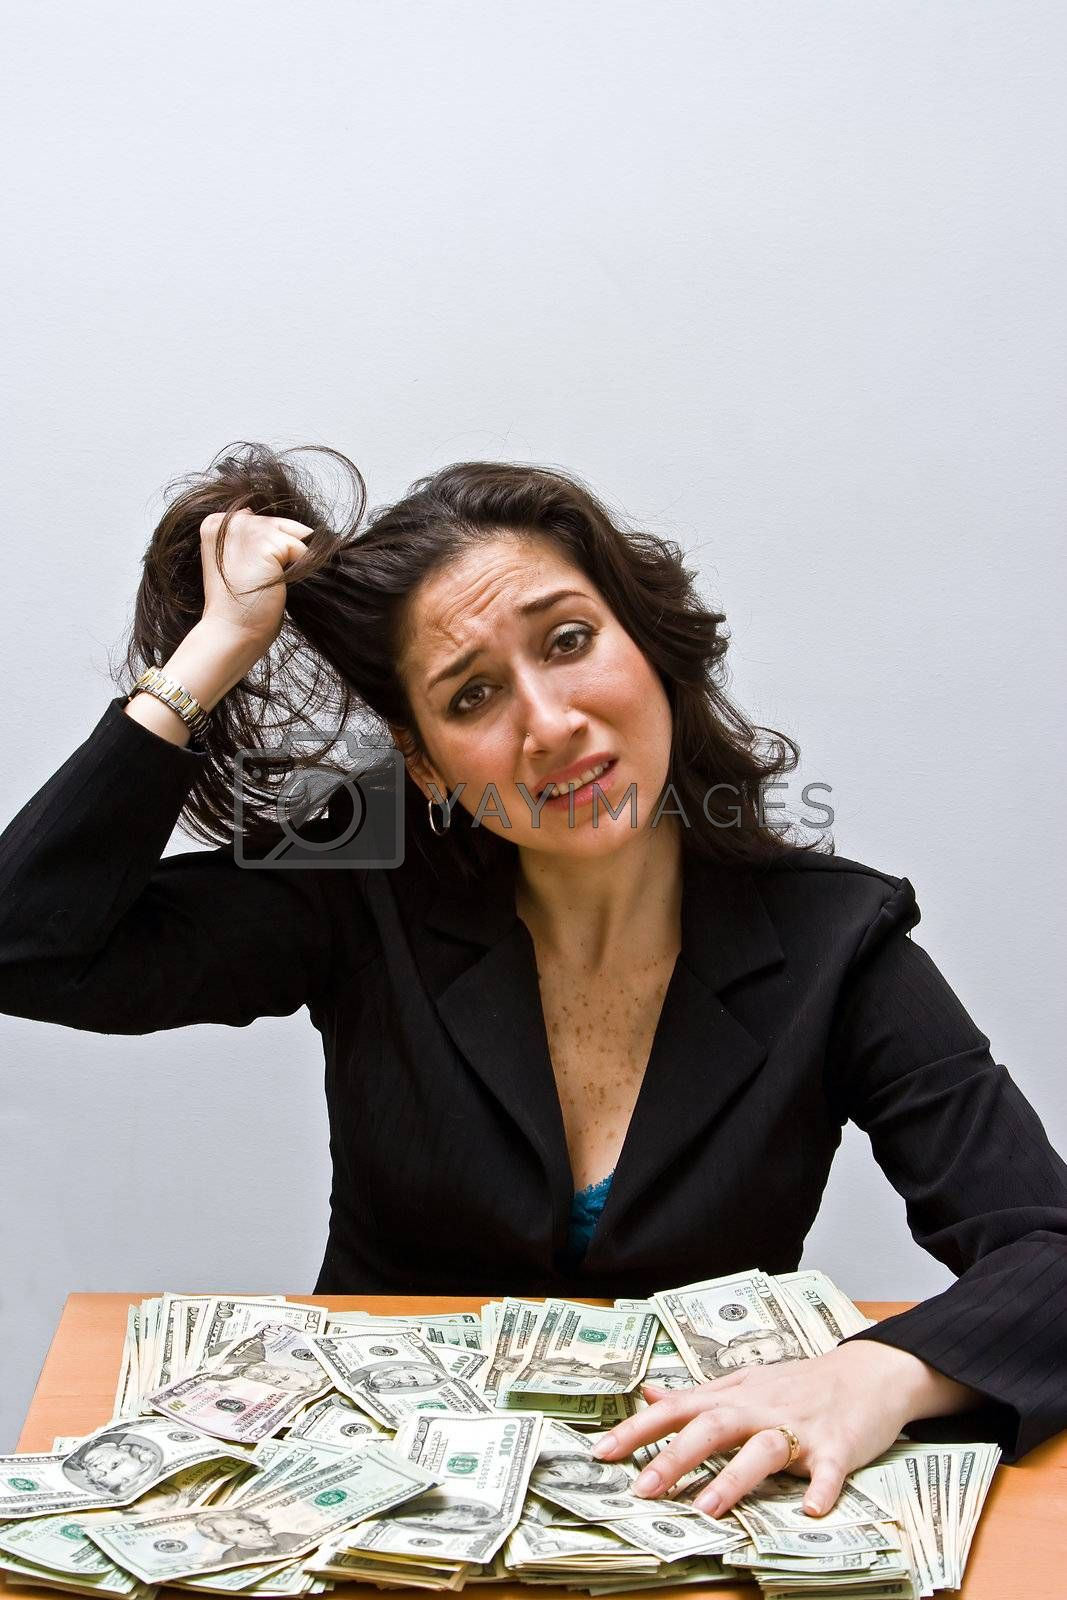 Business woman pulling hair and stressed about finances. Sitting at a table with lots of money. Isolated on a white background